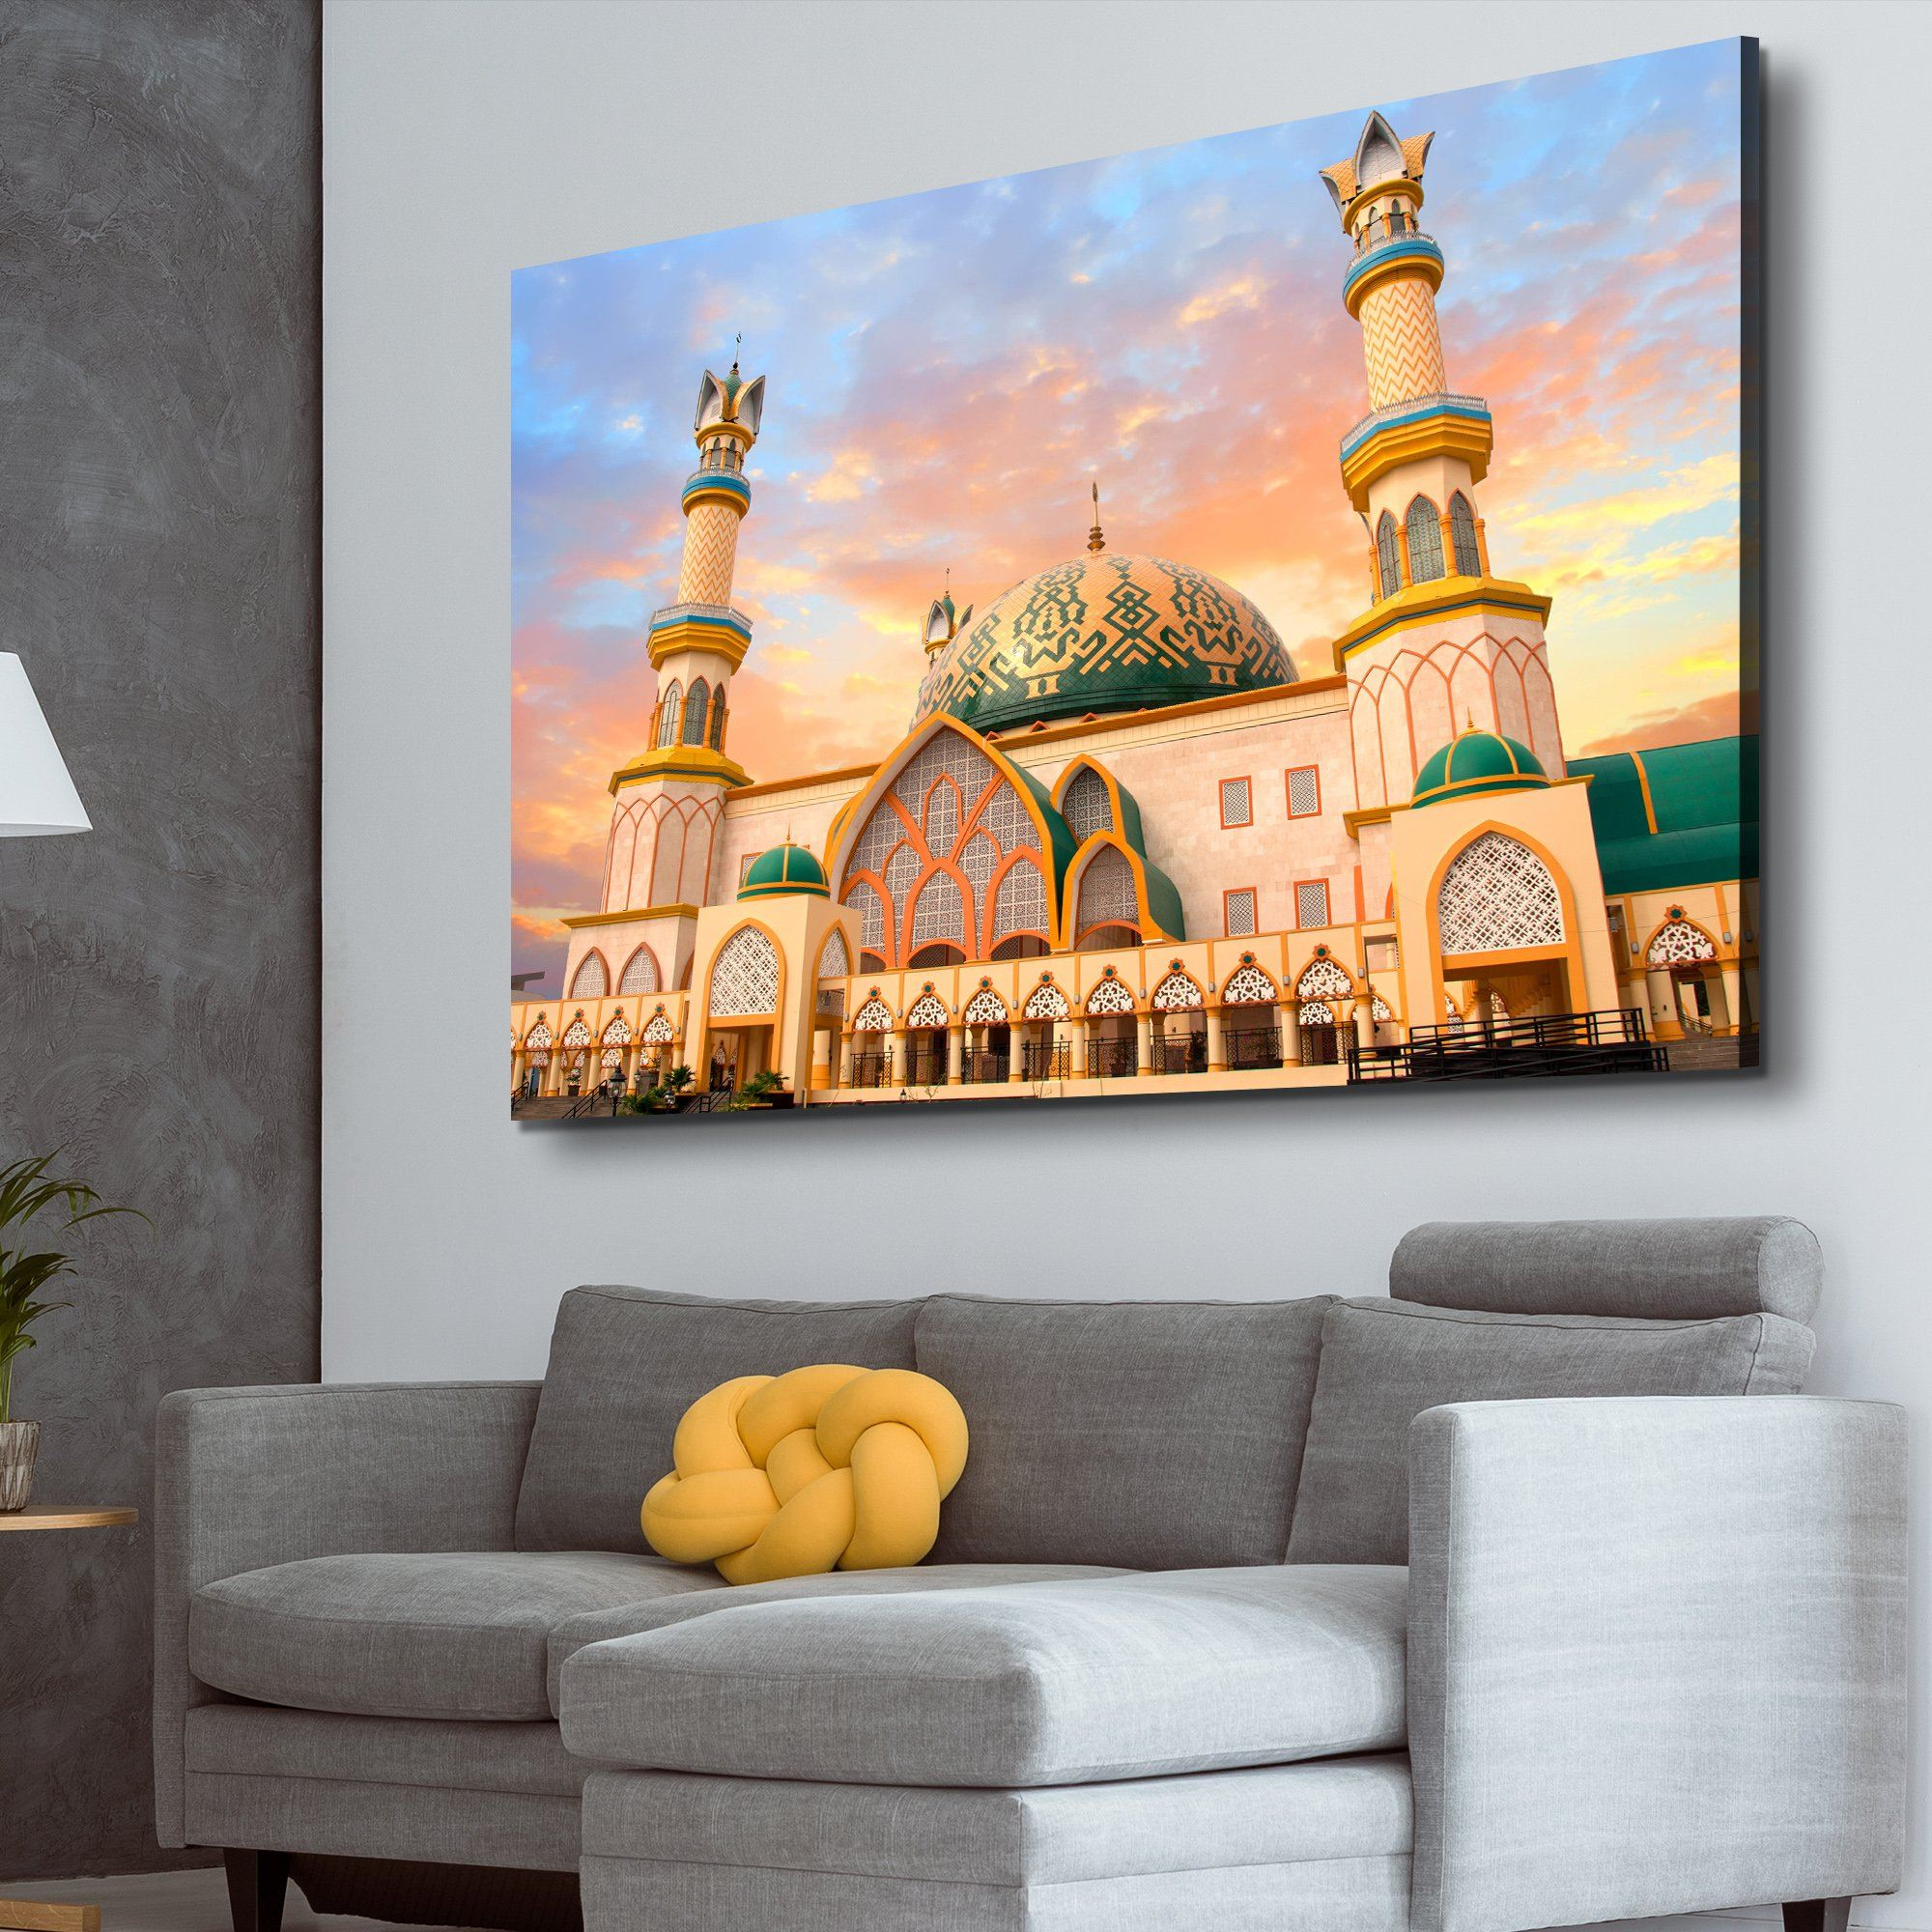 slam muslim mosque art